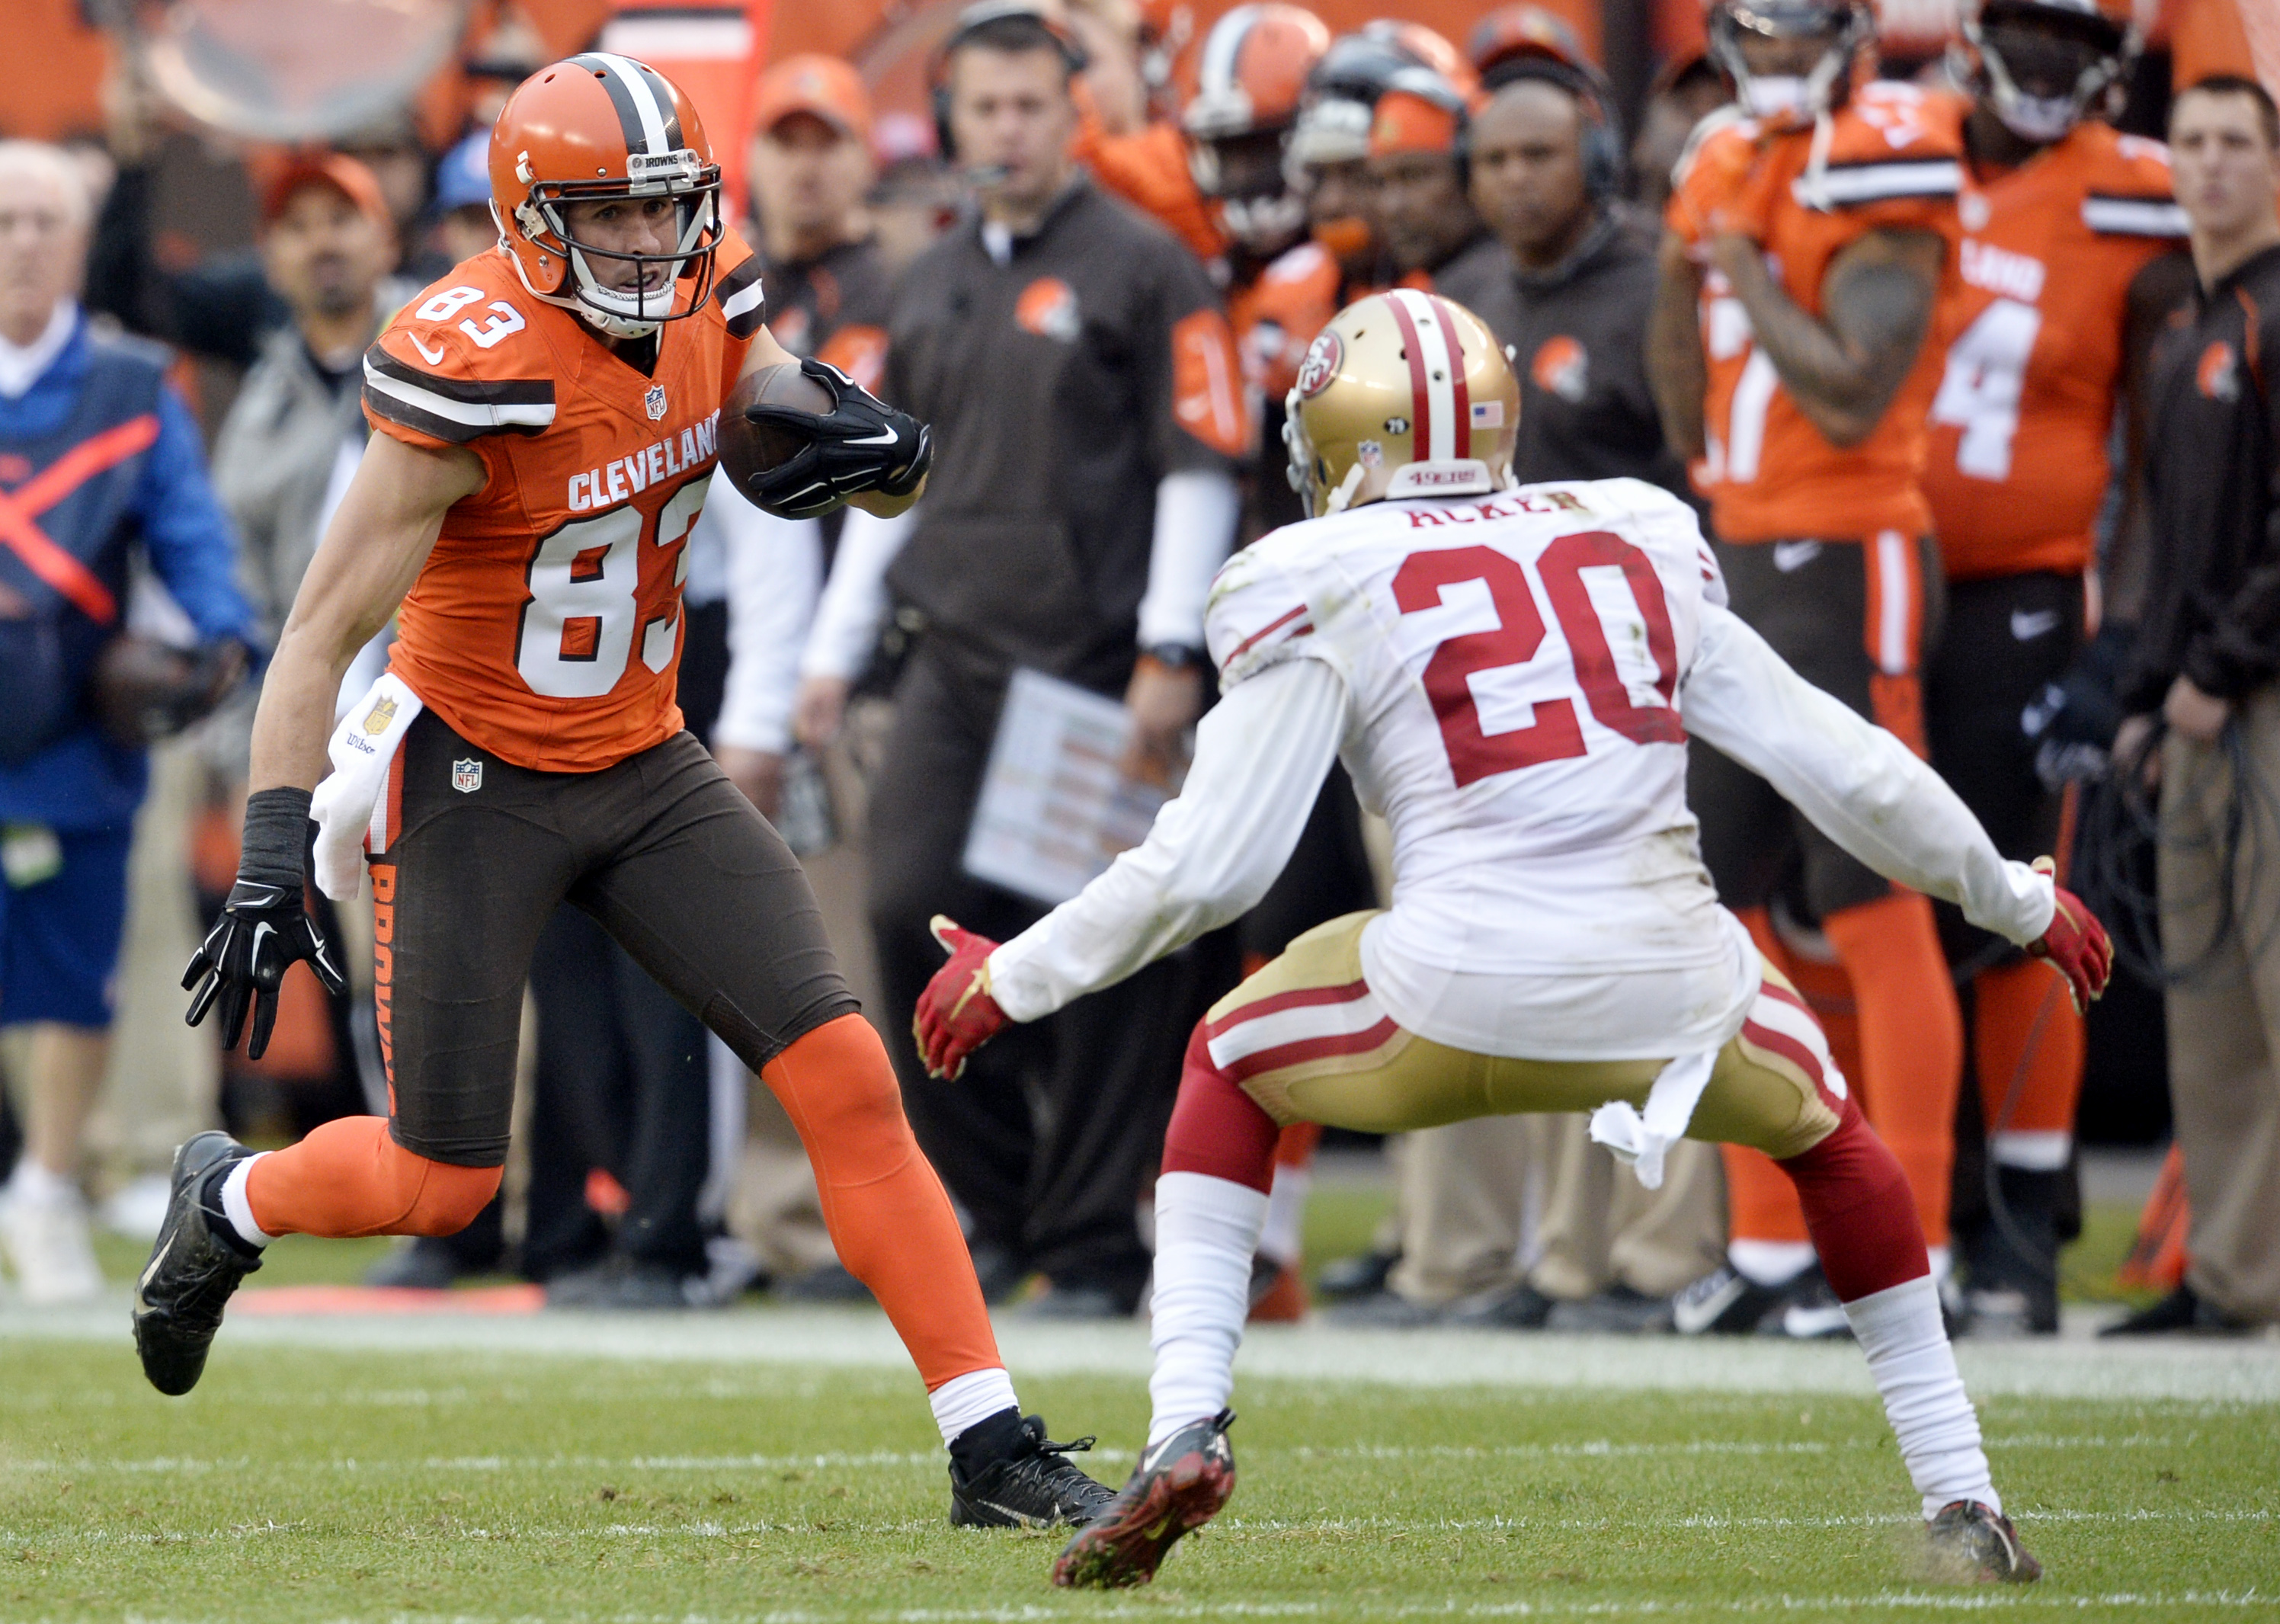 Cleveland Browns wide receiver Brian Hartline (83) runs after a 49-yard pass as San Francisco 49ers cornerback Kenneth Acker (20) looks to tackle him during the second half of an NFL football game, Sunday, Dec. 13, 2015, in Cleveland. (AP Photo/David Rich